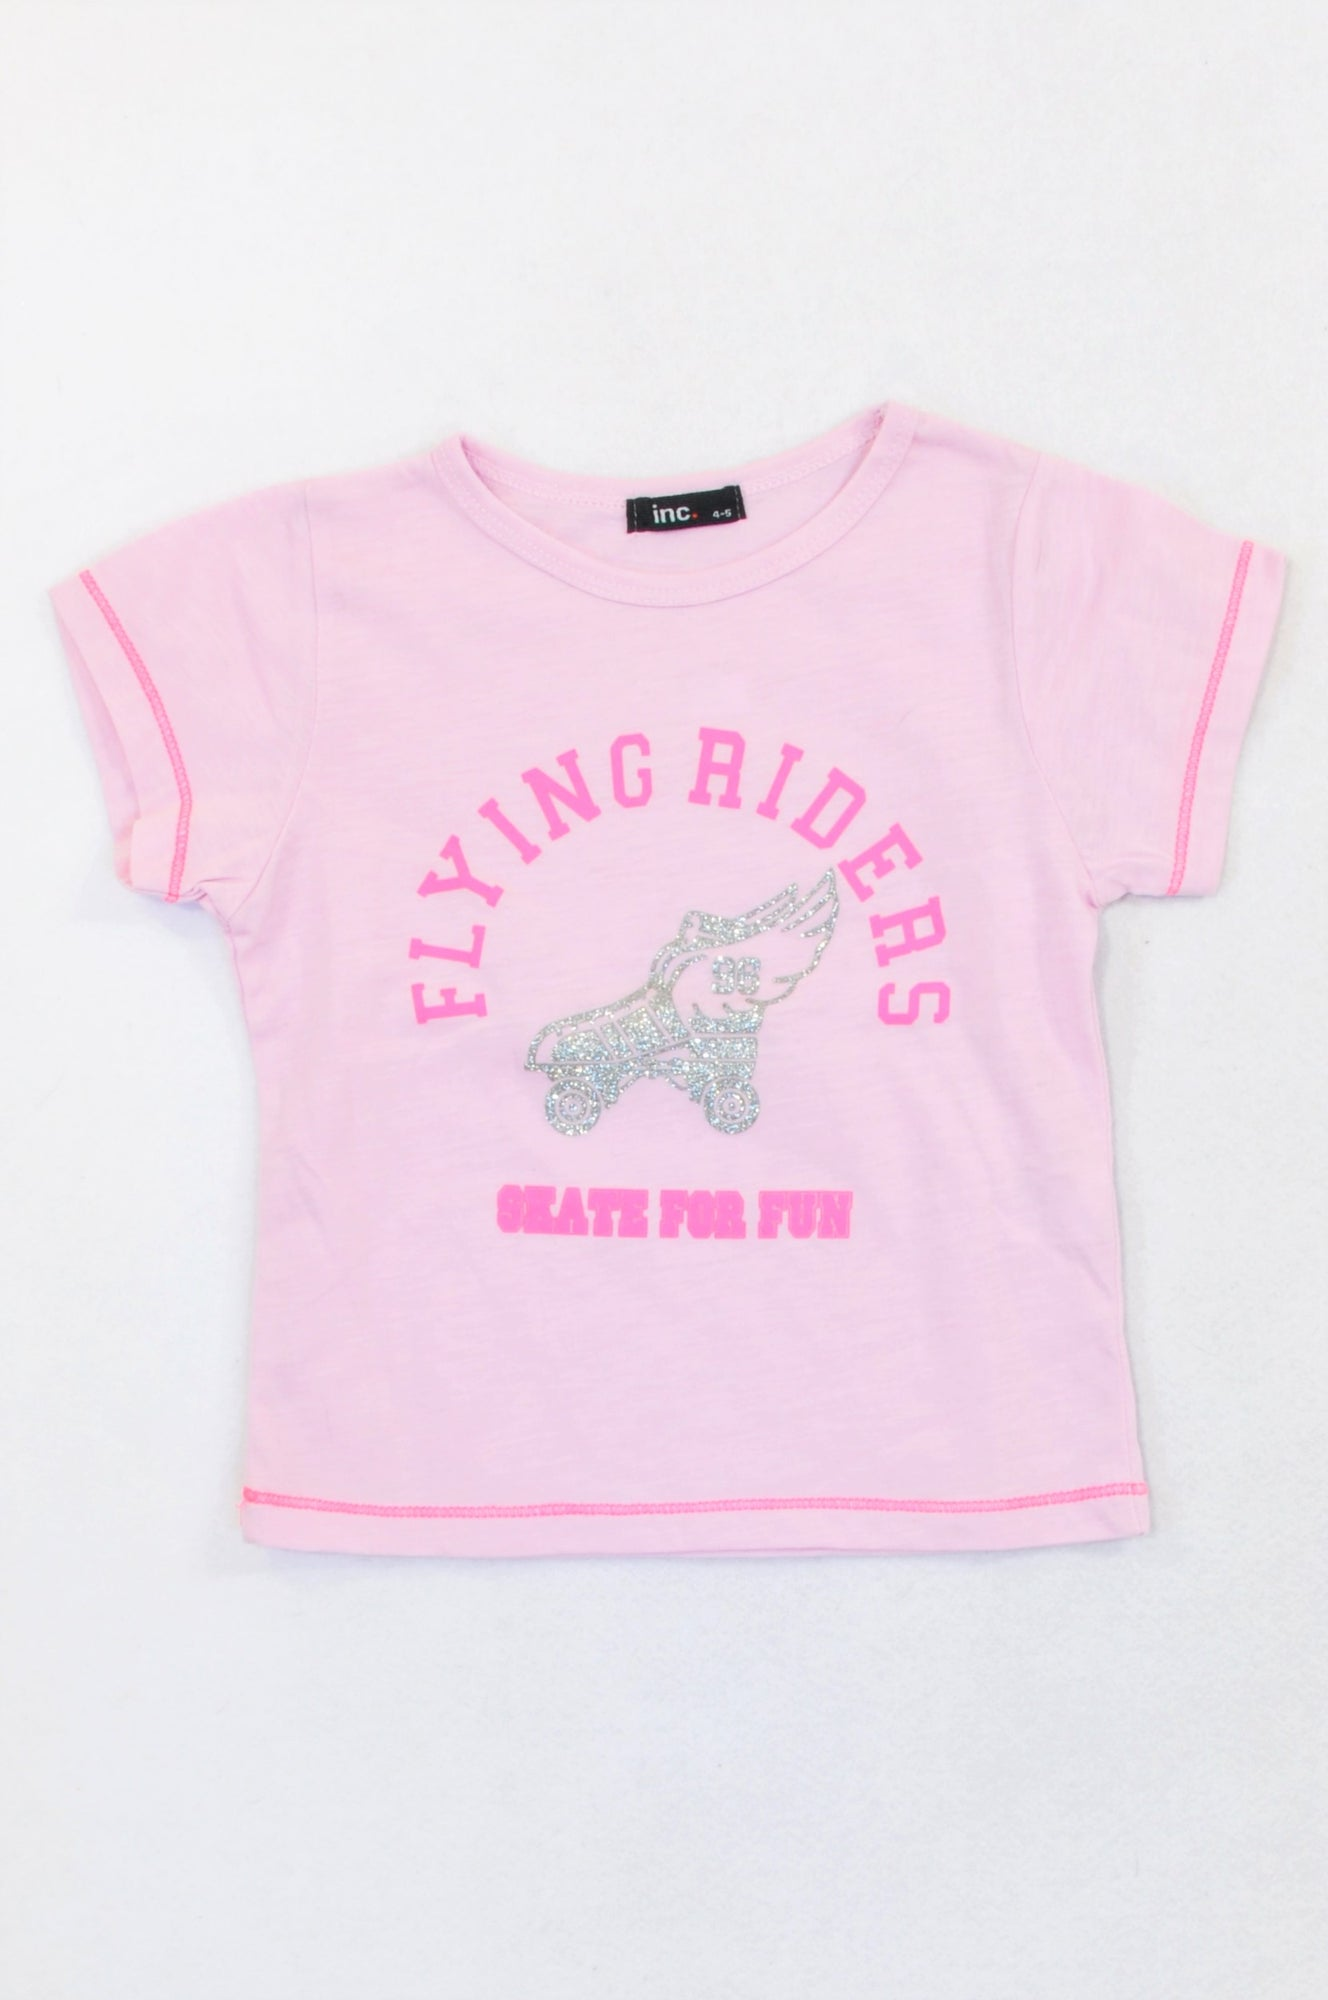 Inc. Pink Flying Riders T-shirt Girls 3-4 years